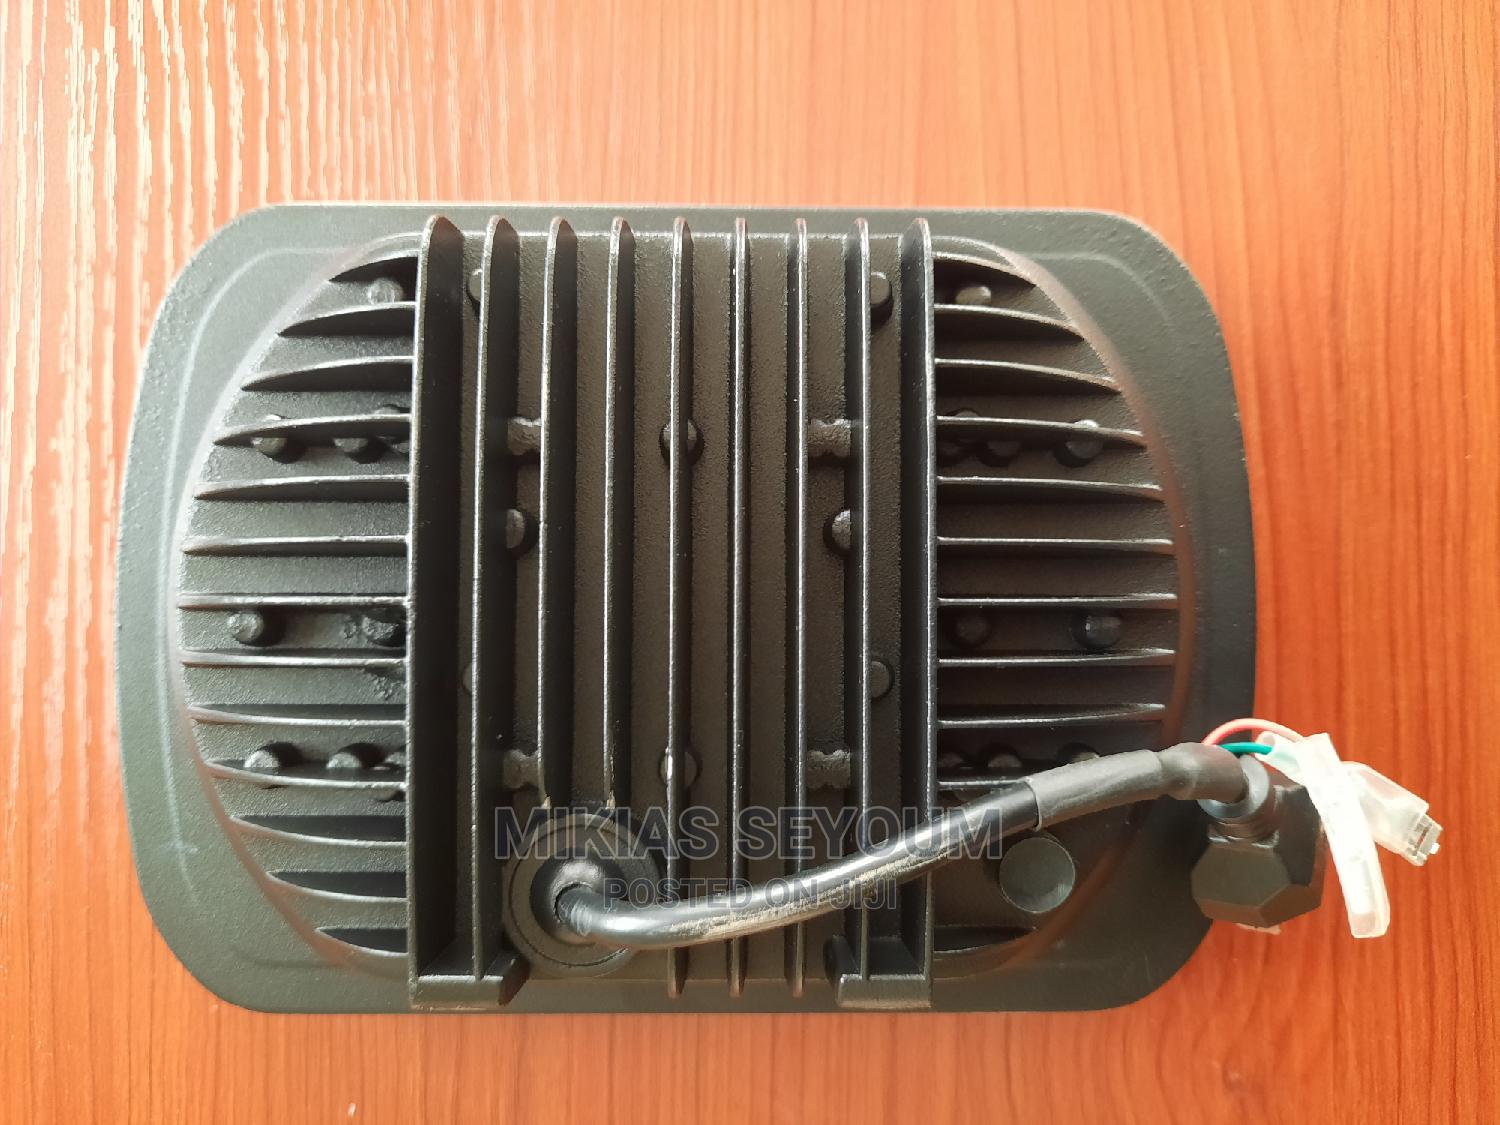 Powerful Car Headlight | Vehicle Parts & Accessories for sale in Bole, Addis Ababa, Ethiopia